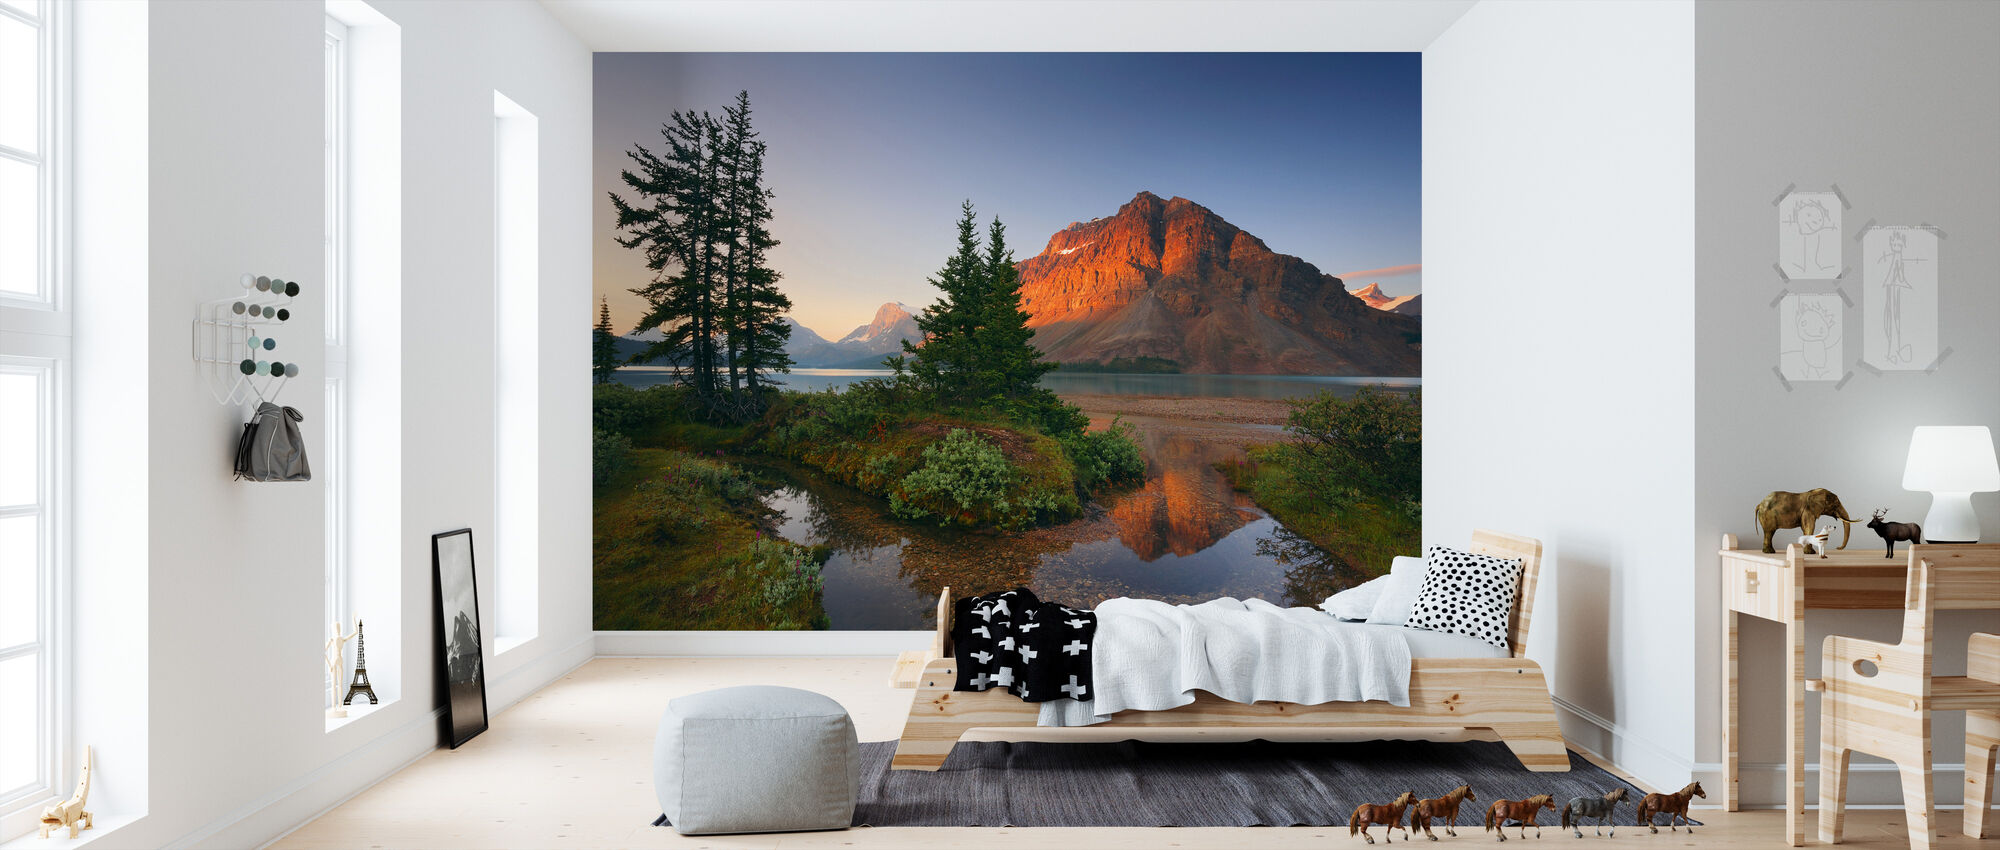 crowfoot mountain reflection fototapete nach ma photowall. Black Bedroom Furniture Sets. Home Design Ideas